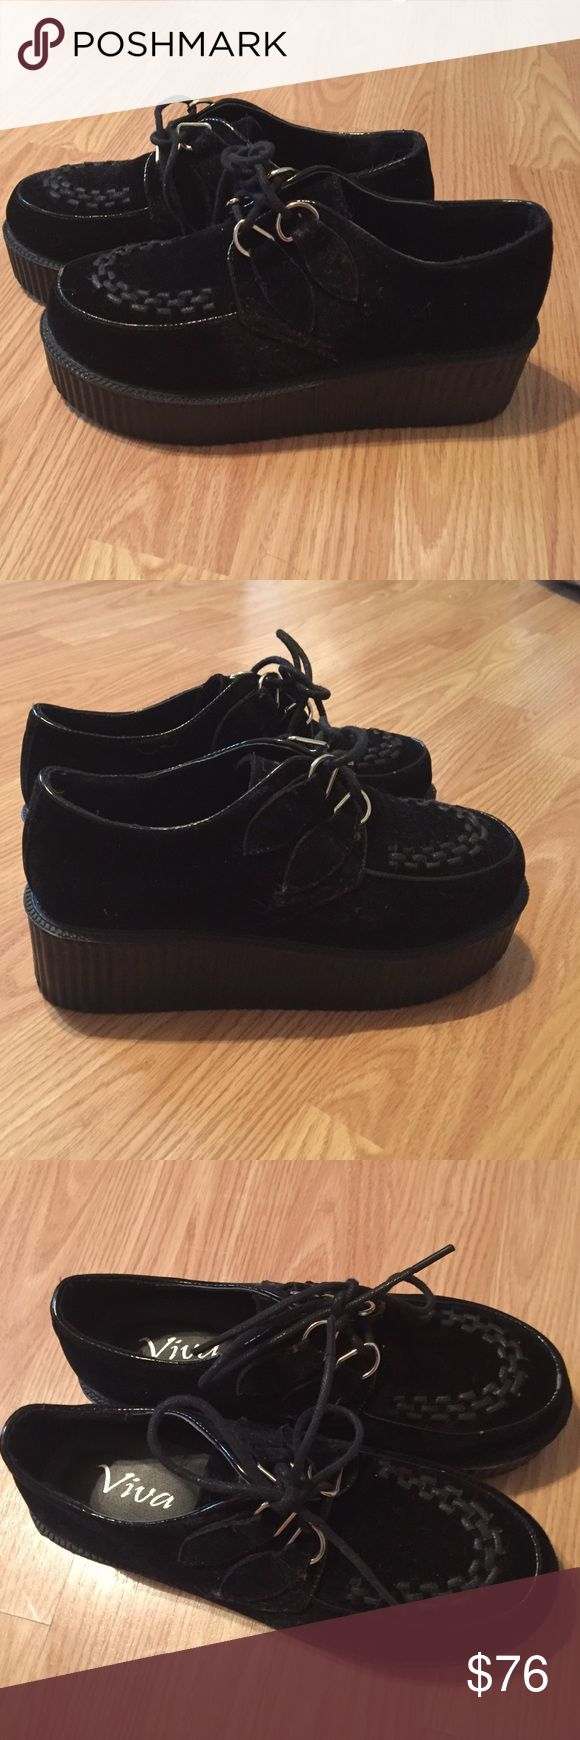 Viva Black Suede Creepers Women's Size 7 Viva Black Suede Women's Creepers / Platforms Size 7 Gently Used Creepers Shoes Platforms